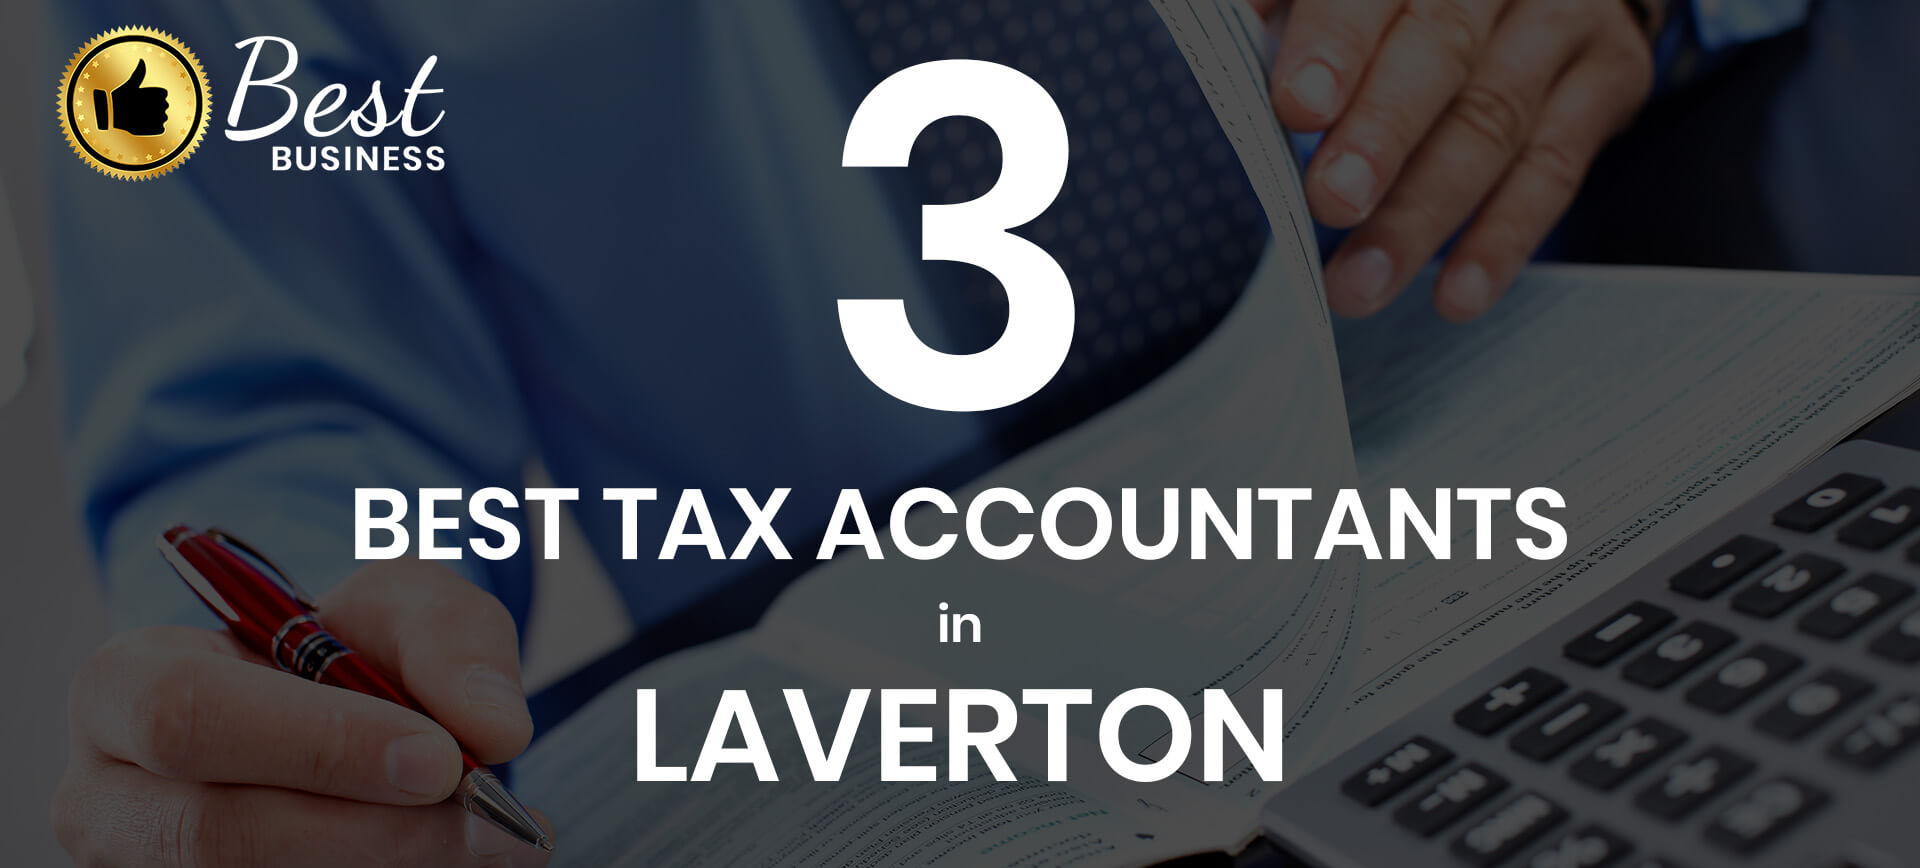 3 Best Tax Accountants in Laverton